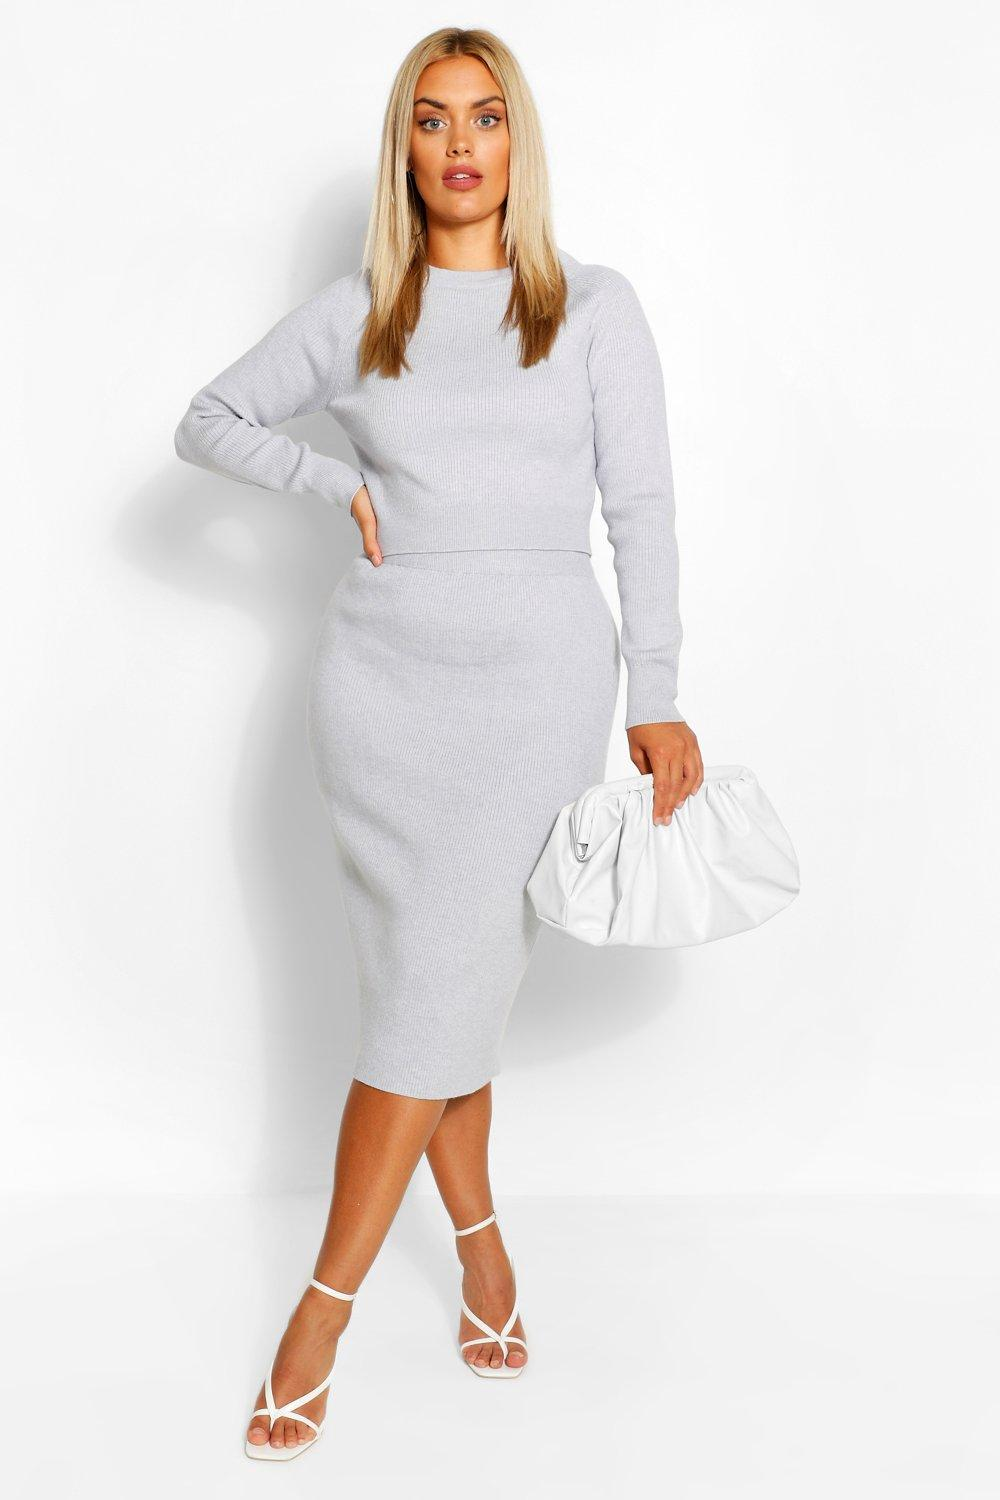 Plus Fluffy Knitted Jumper & Skirt Set 6